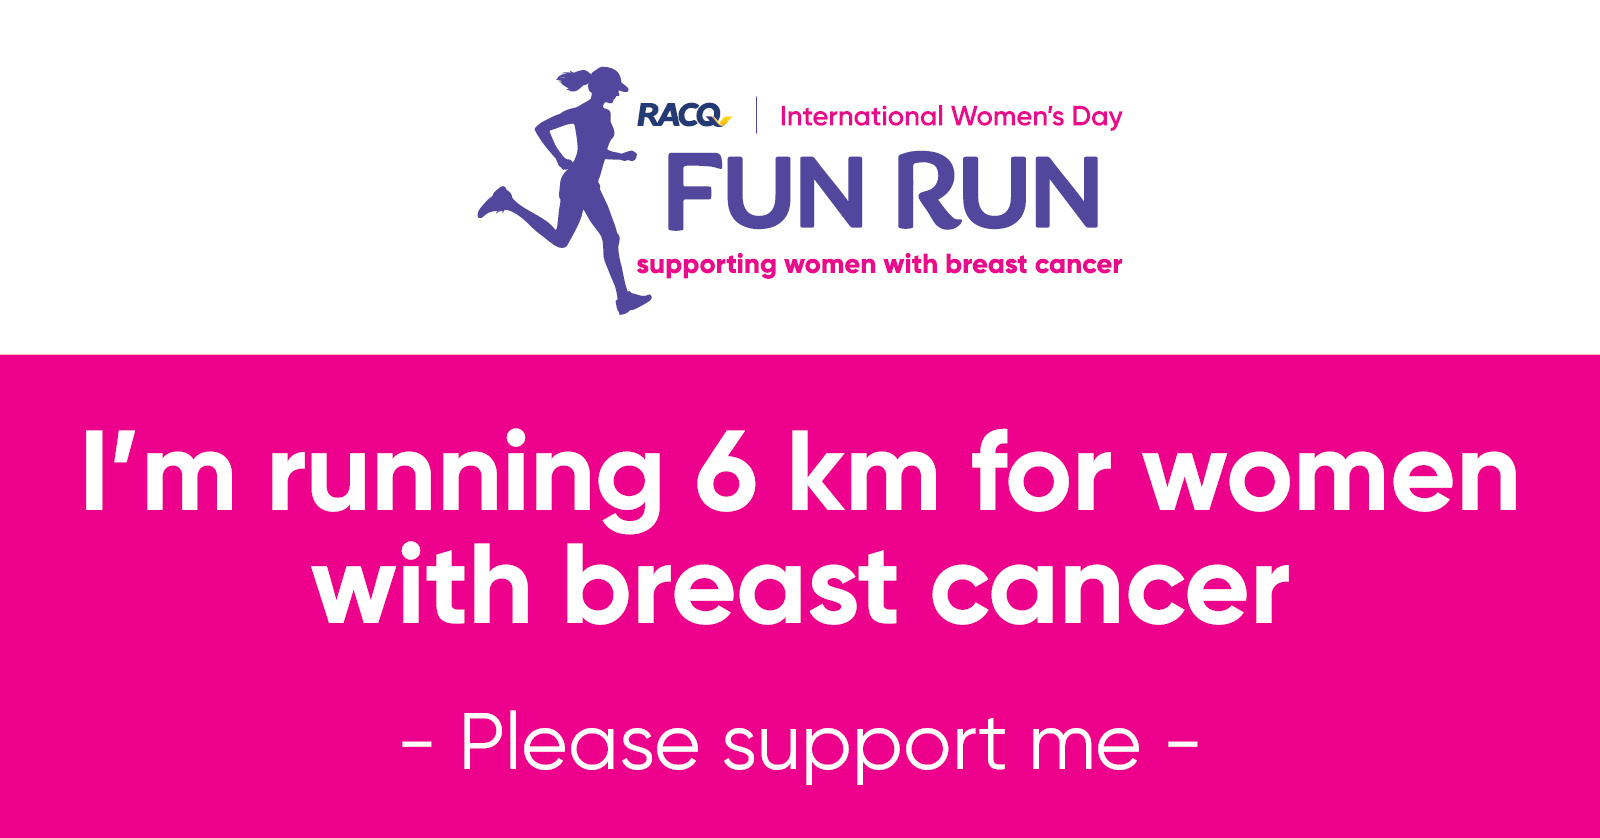 Facebook - I'm running 6 km - please support